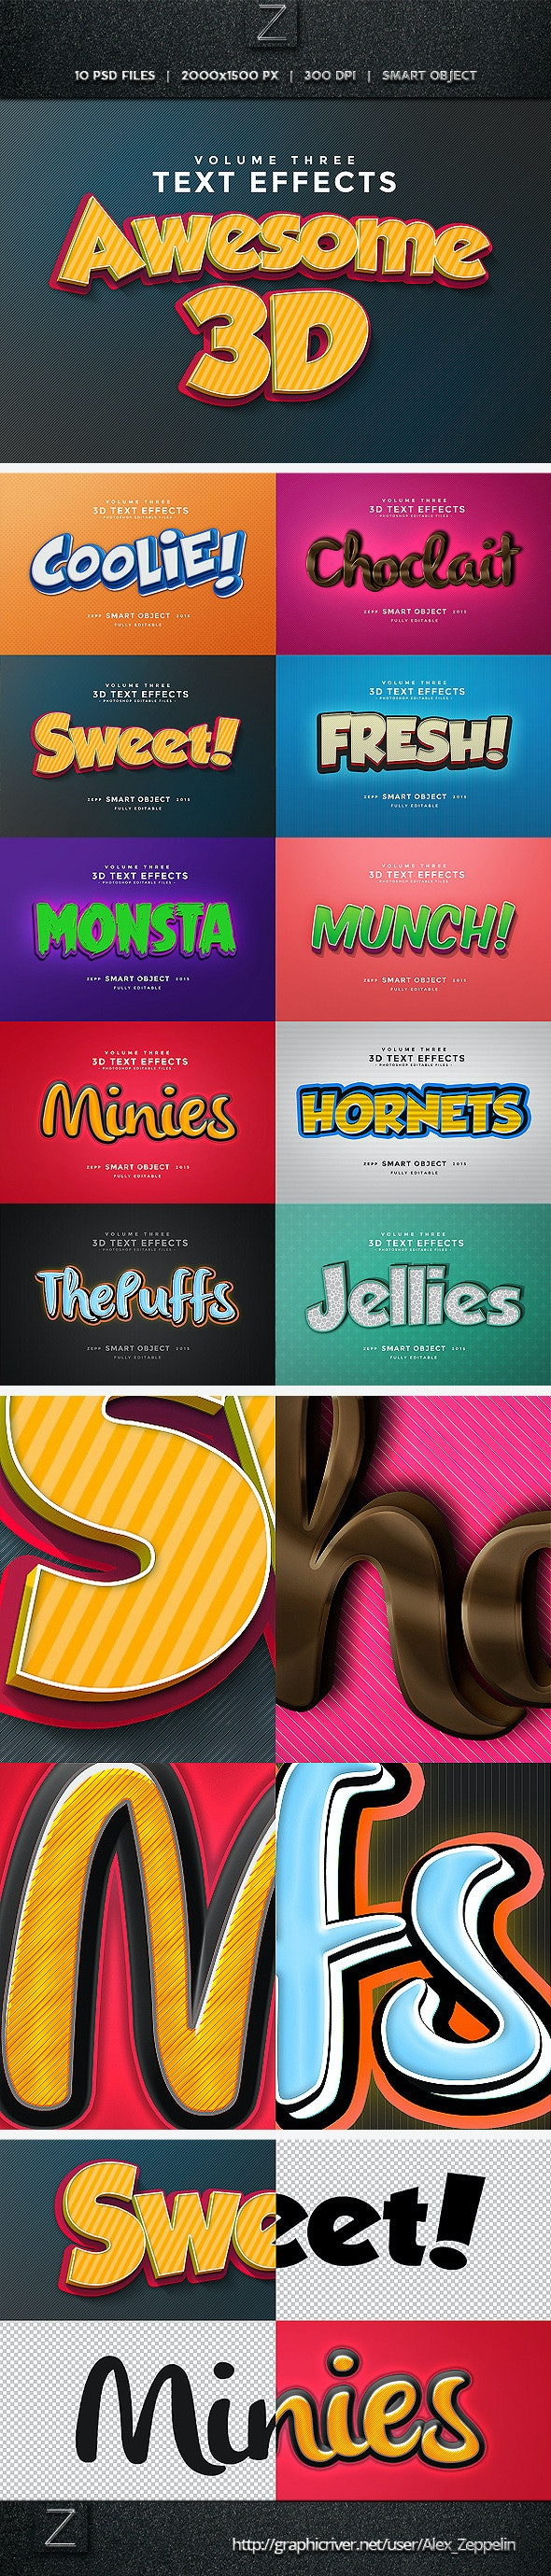 3D Text Effects Vol.3 - Text Effects Actions